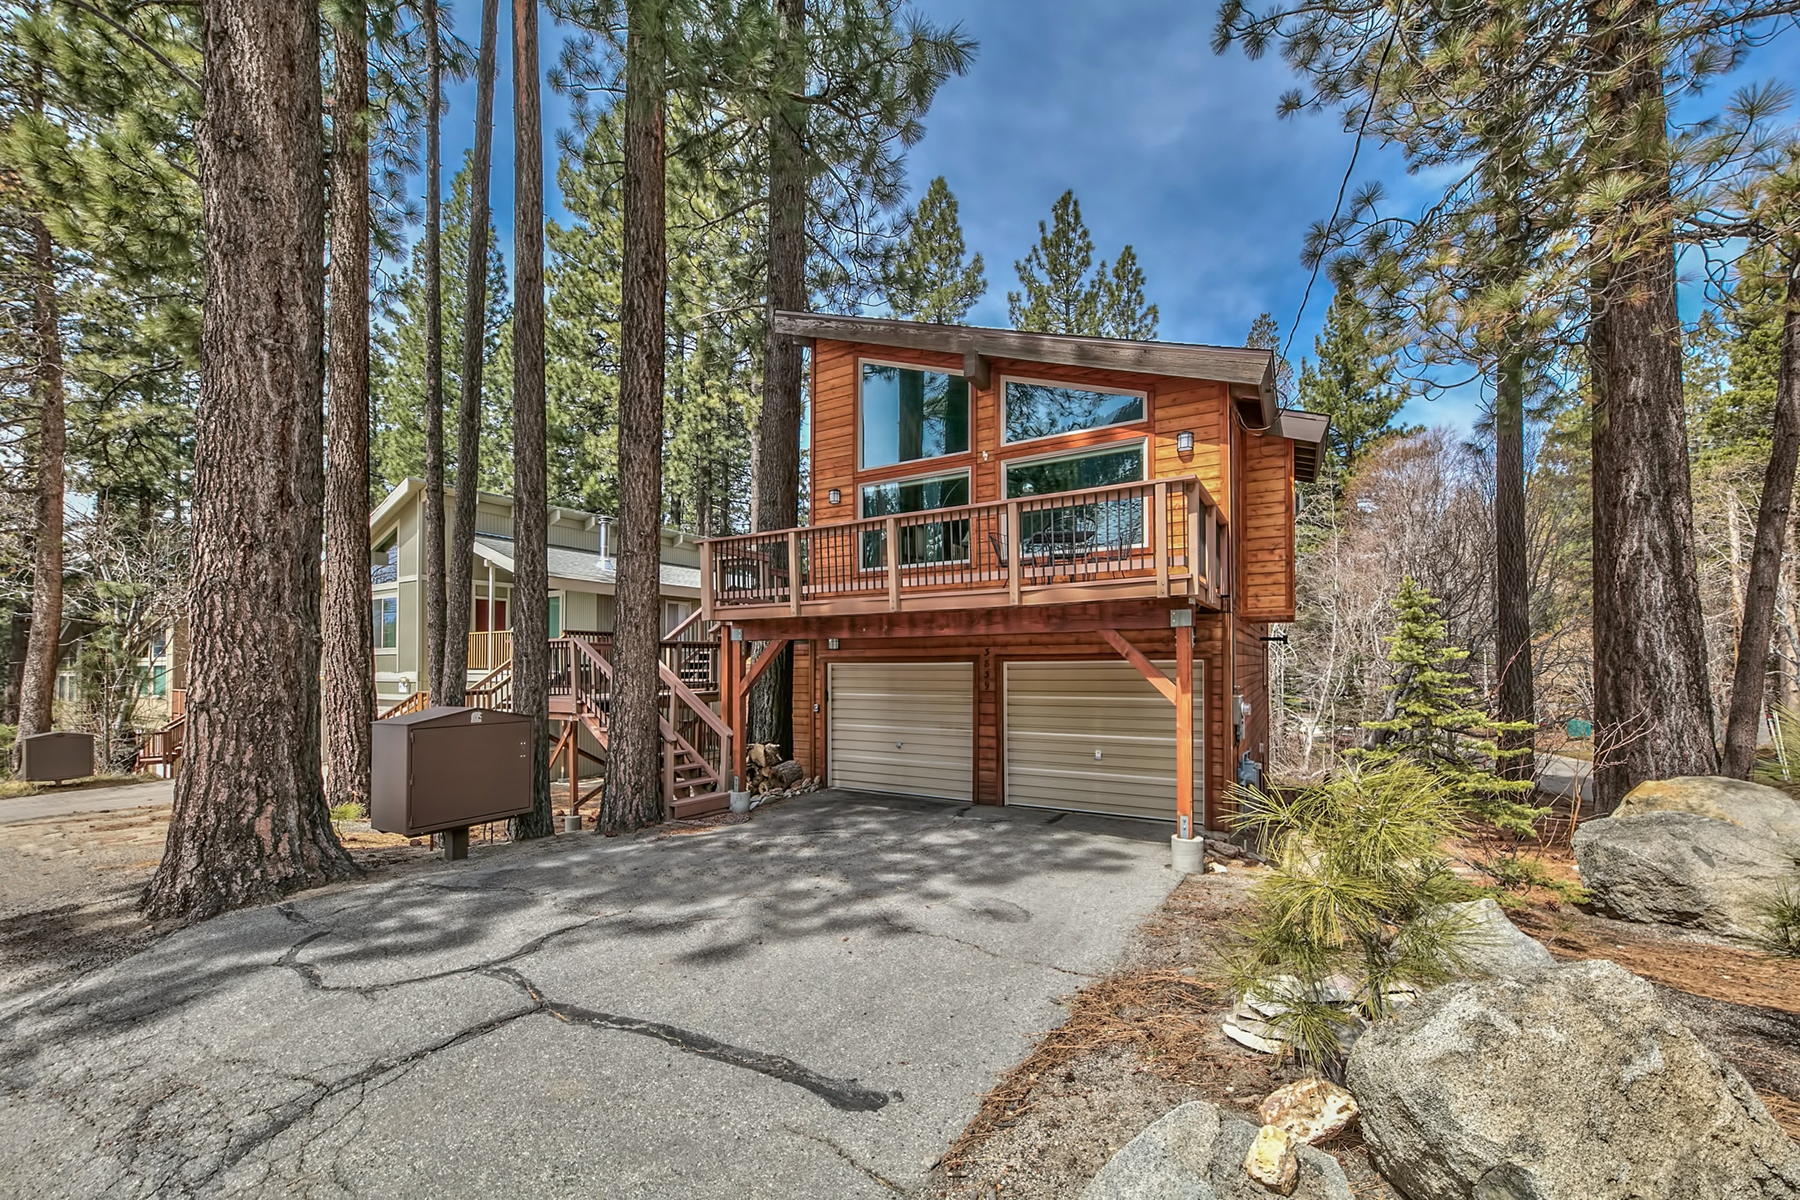 Single Family Home for Active at 3839 Saddle Road, South Lake Tahoe CA 96150 3839 Saddle Road South Lake Tahoe, California 96150 United States